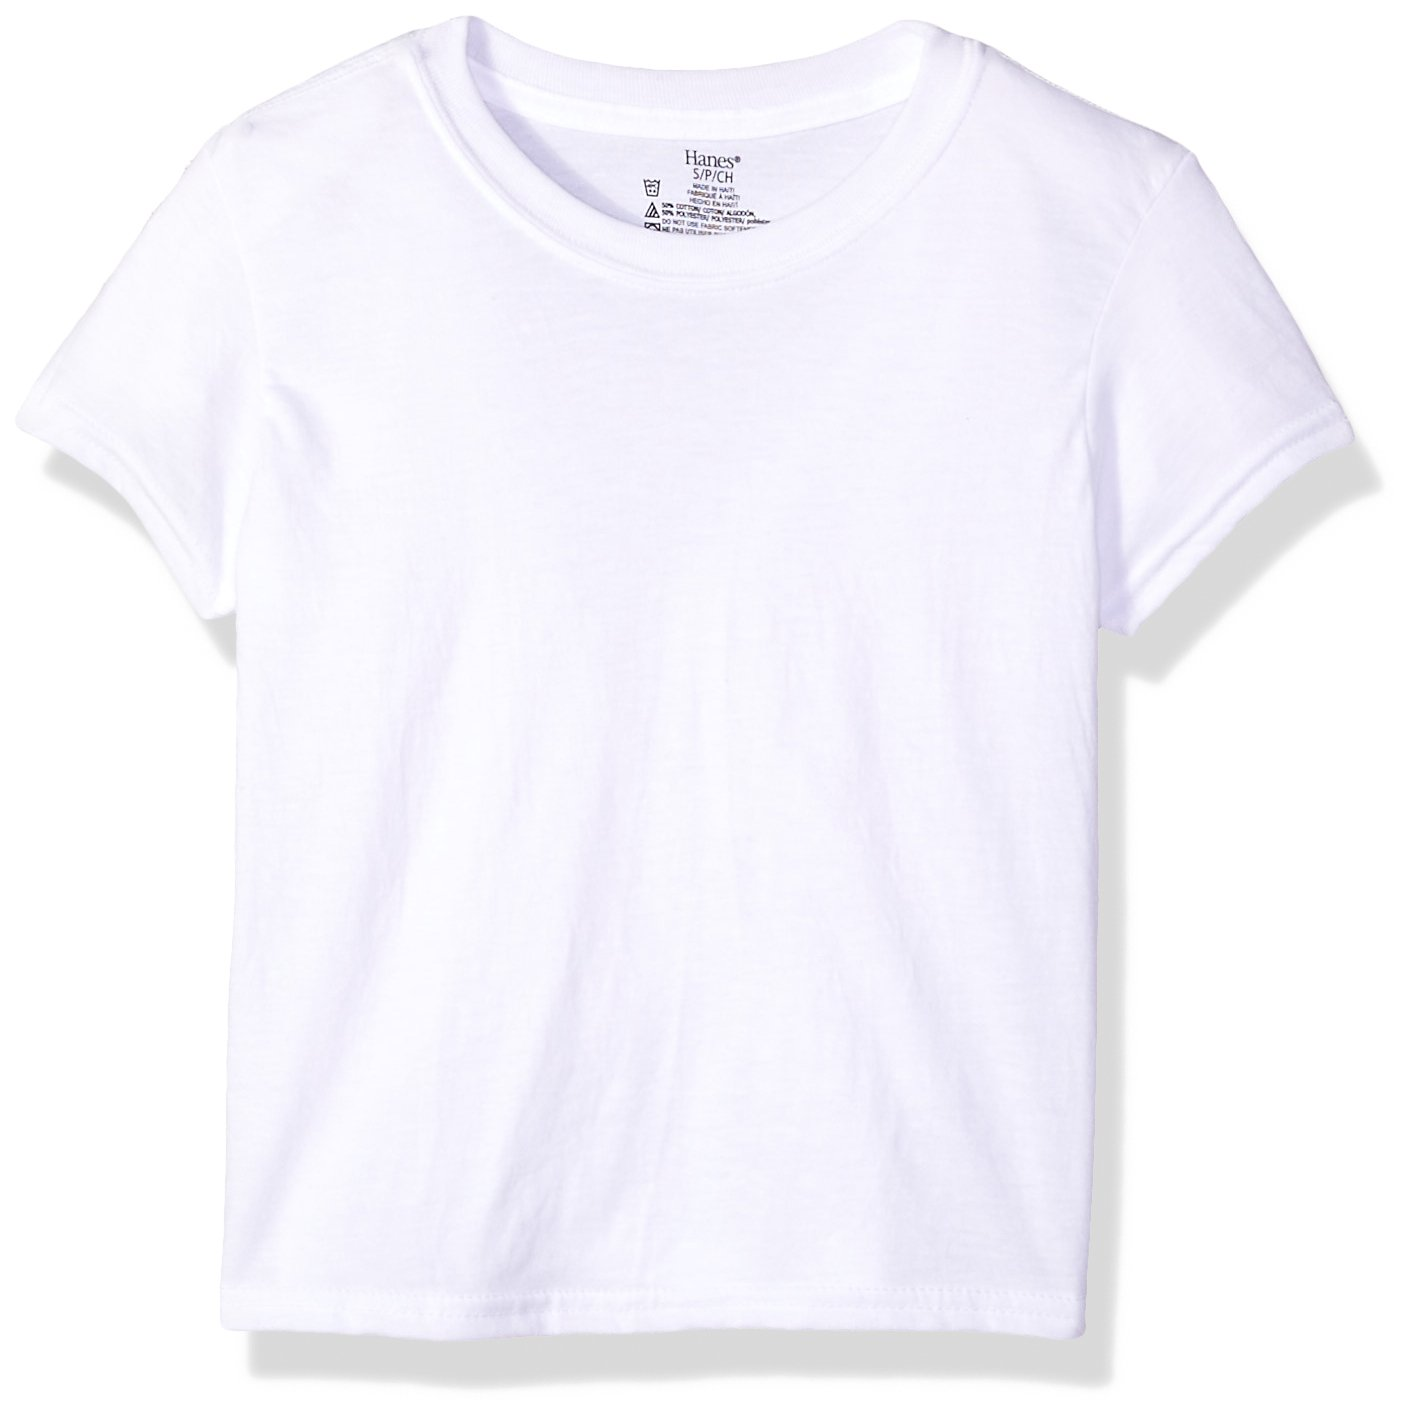 Hanes Big Boys' Ultimate Cool Comfort Crewneck Undershirt 5-Pack, White, Extra Large